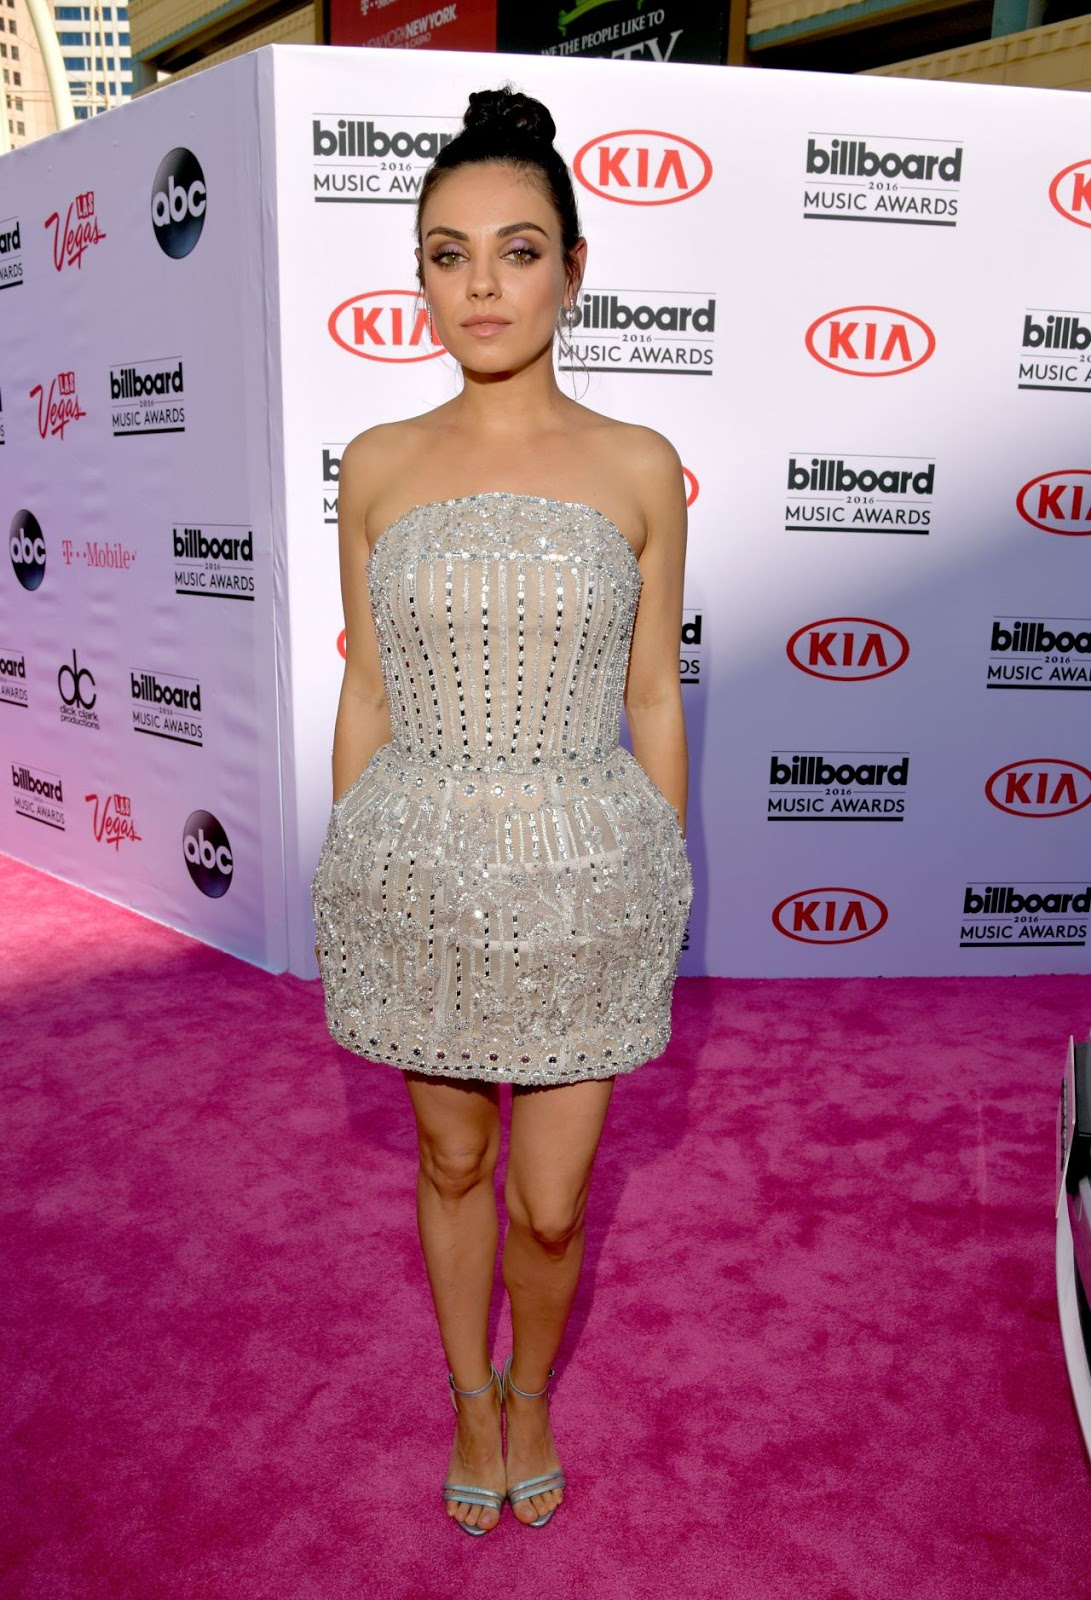 Mila Kunis is chic in a strapless silver dress at the Billboard Music Awards 2016